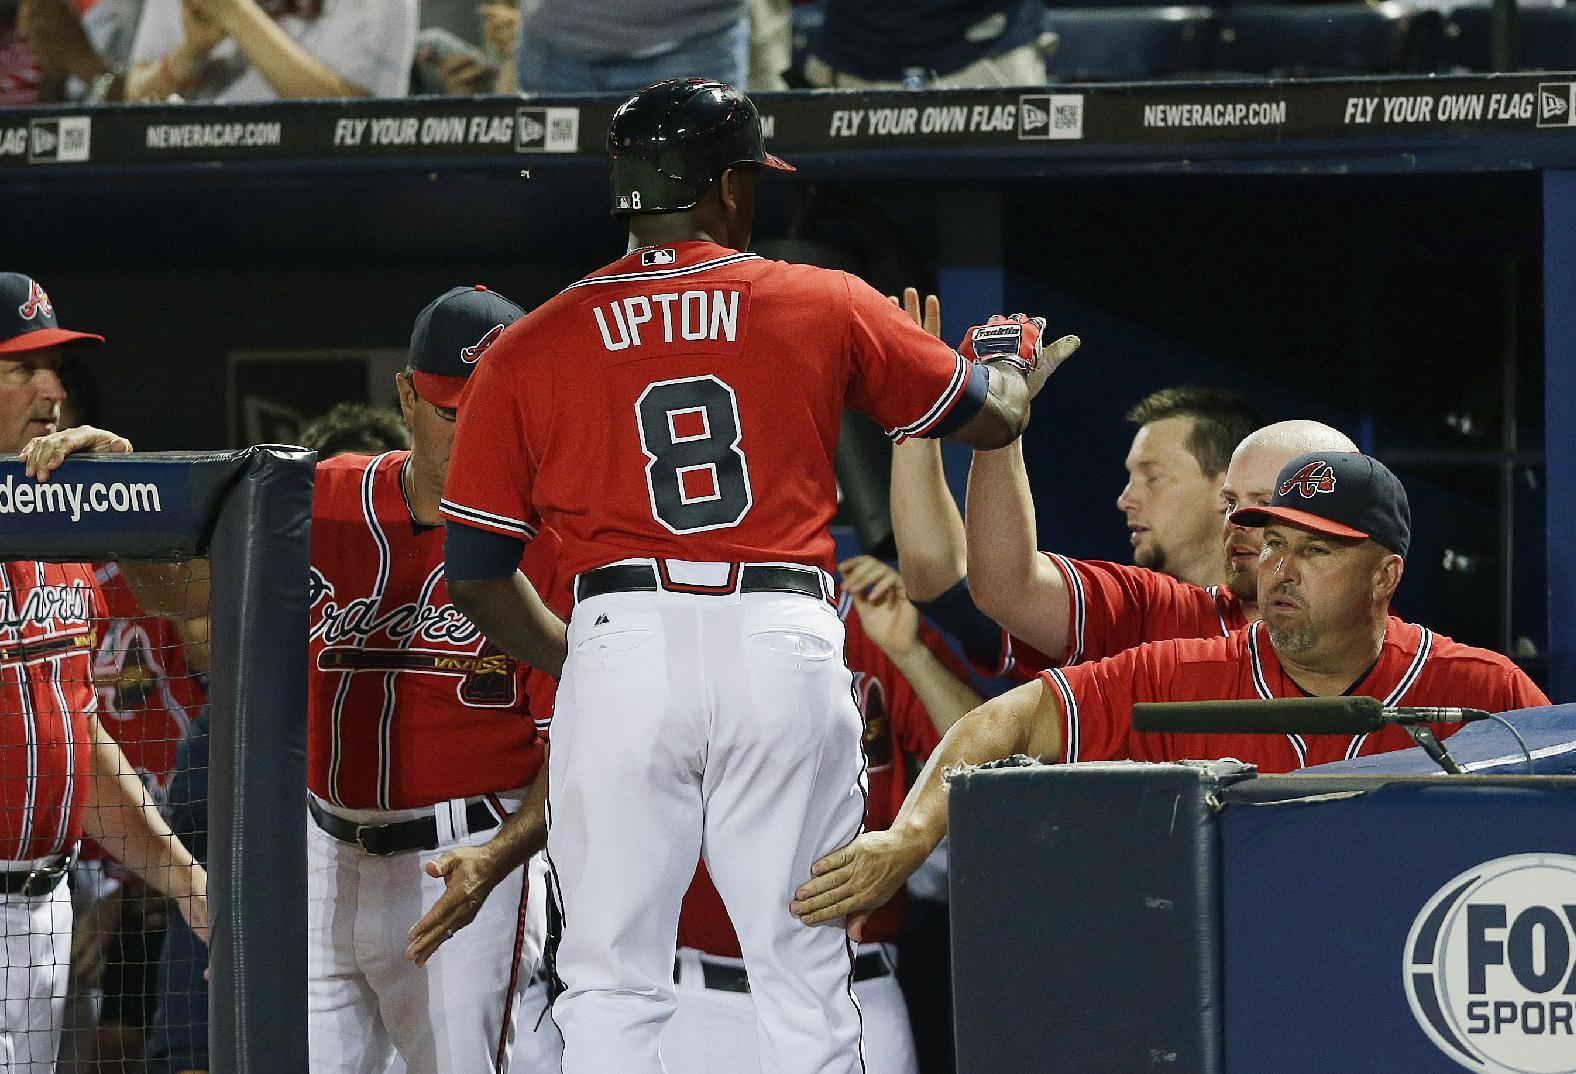 Atlanta Braves' Justin Upton (8) gets a pat on the leg from manager Fredi Gonzalez, right, after hitting a home run in the fourth inning of a baseball game against the San Diego Padres in Atlanta, Friday, Sept. 13, 2013